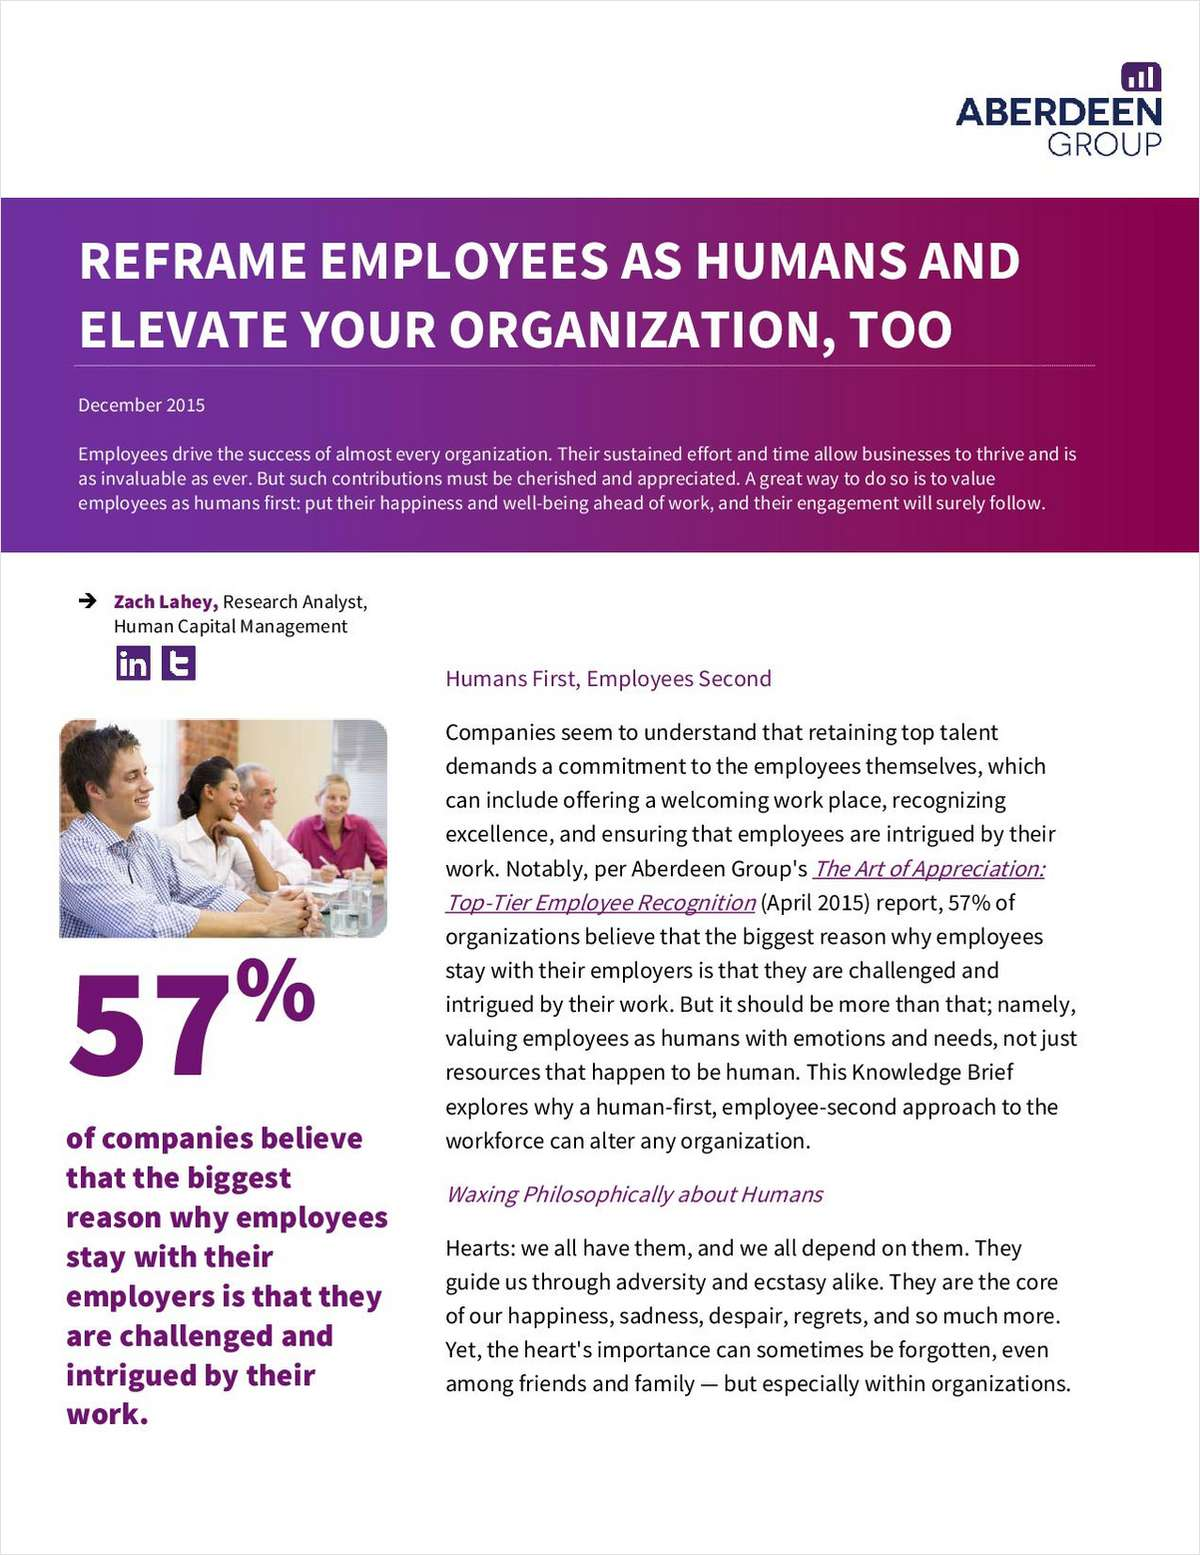 Reframe Employees as Humans And Elevate Your Organization, Too